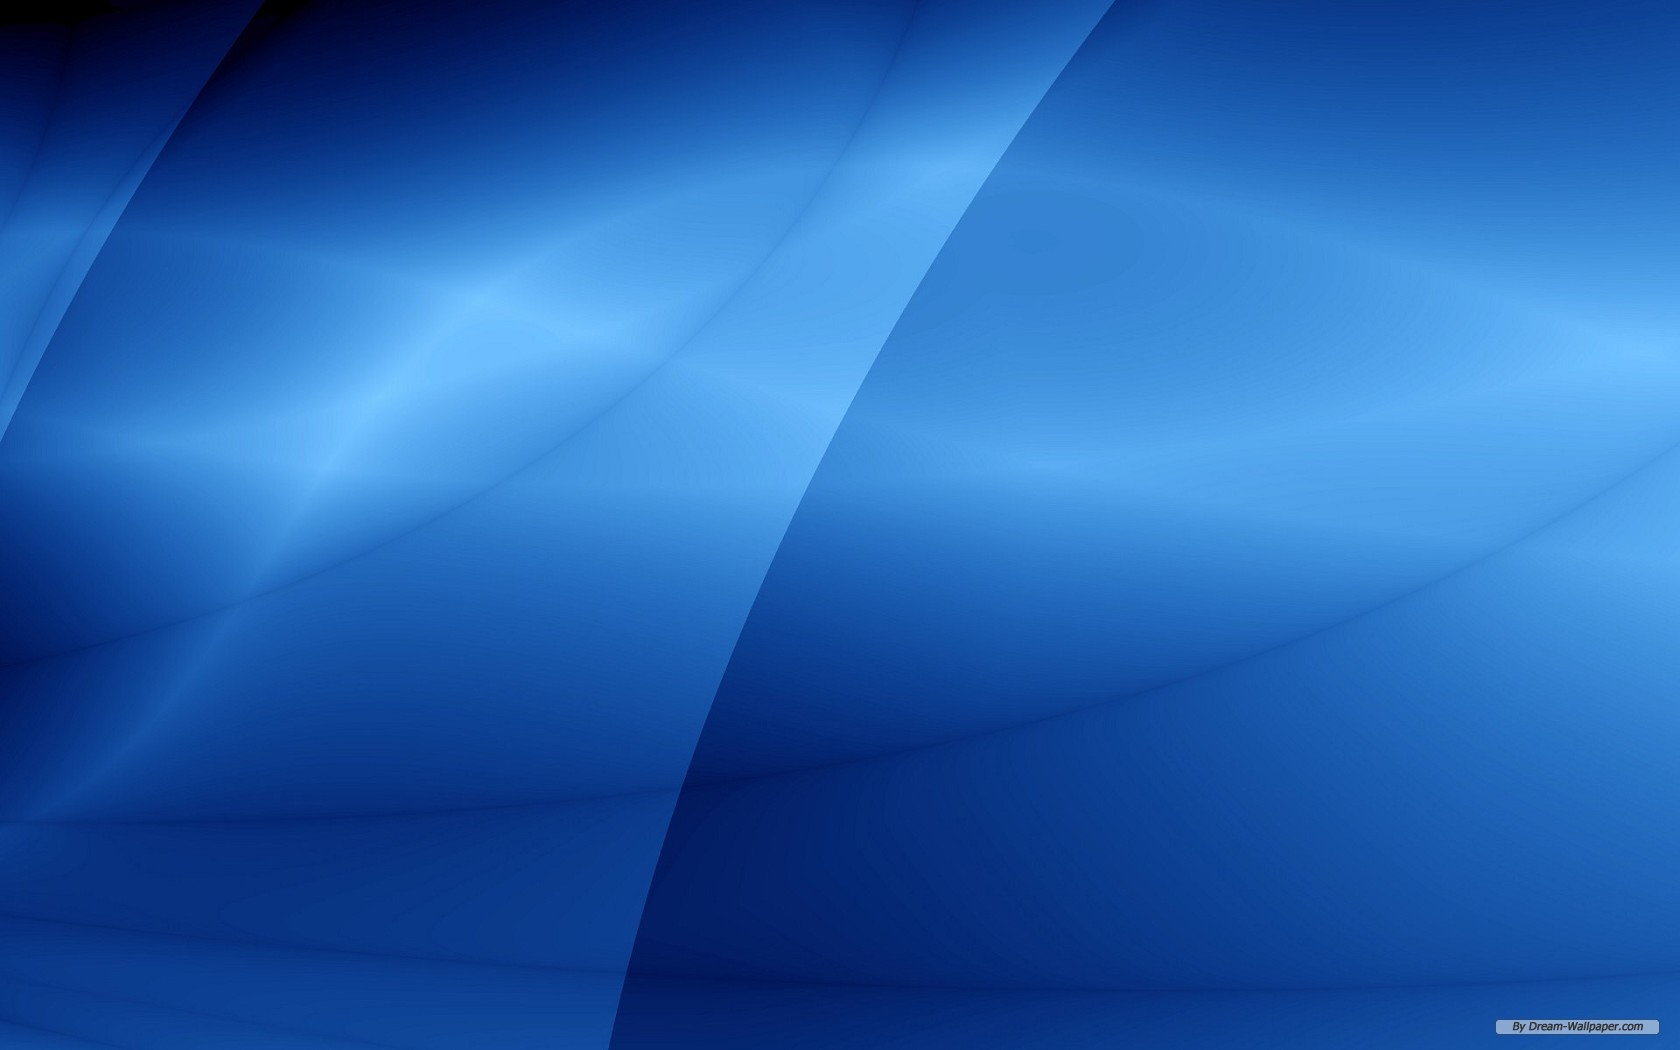 Samsung Galaxy S3 3d Wallpaper Free Download Download Blue Theme Wallpapers Gallery